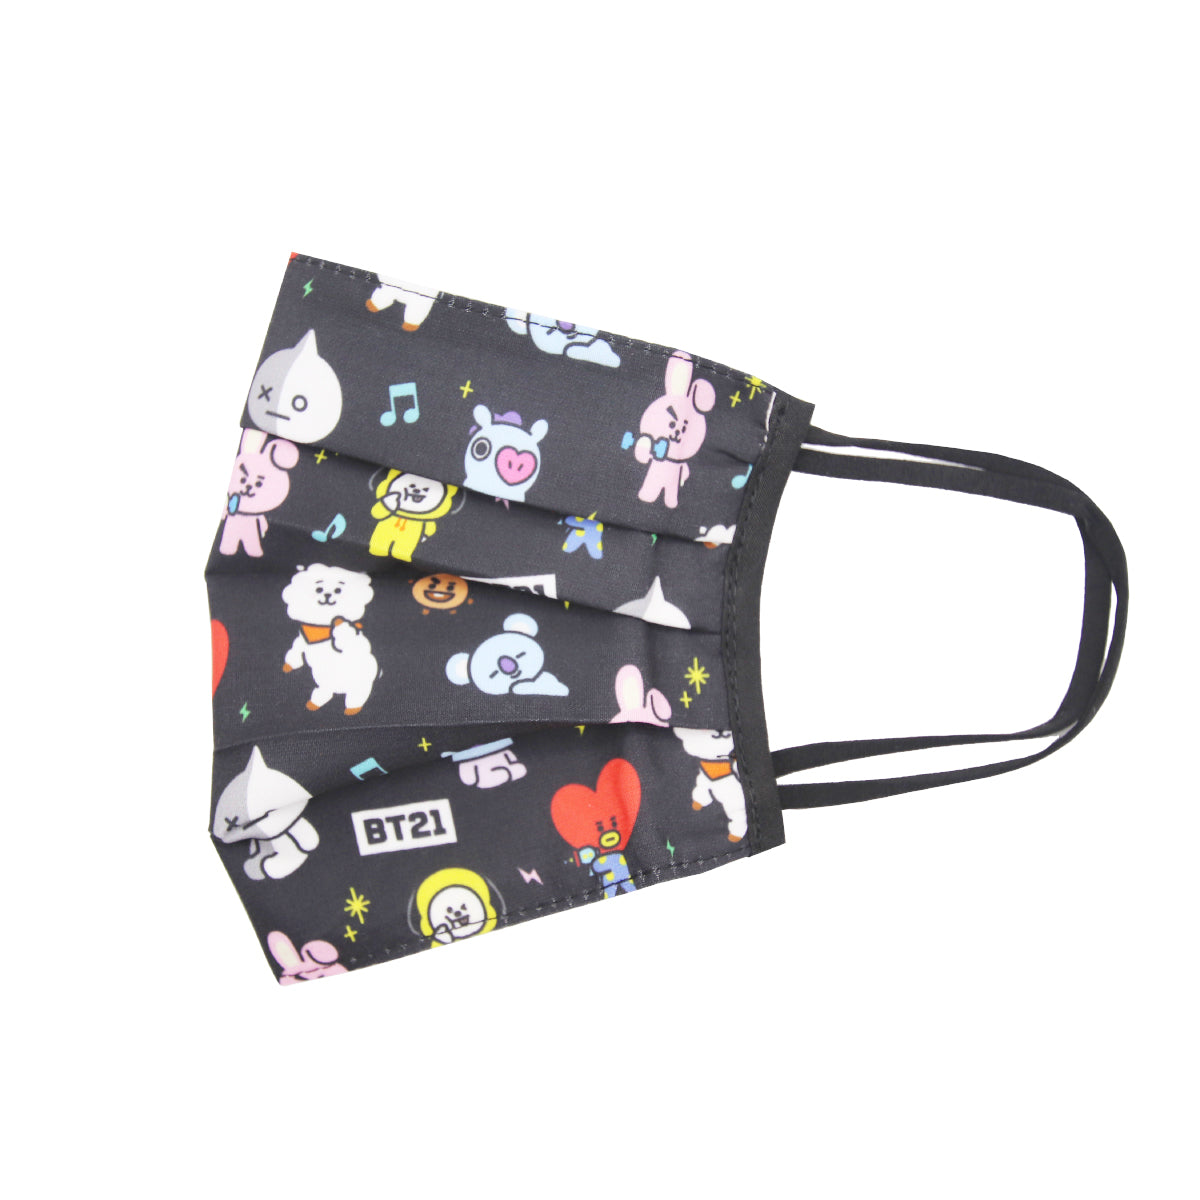 BT21 Pleated Fashion Face Mask Black